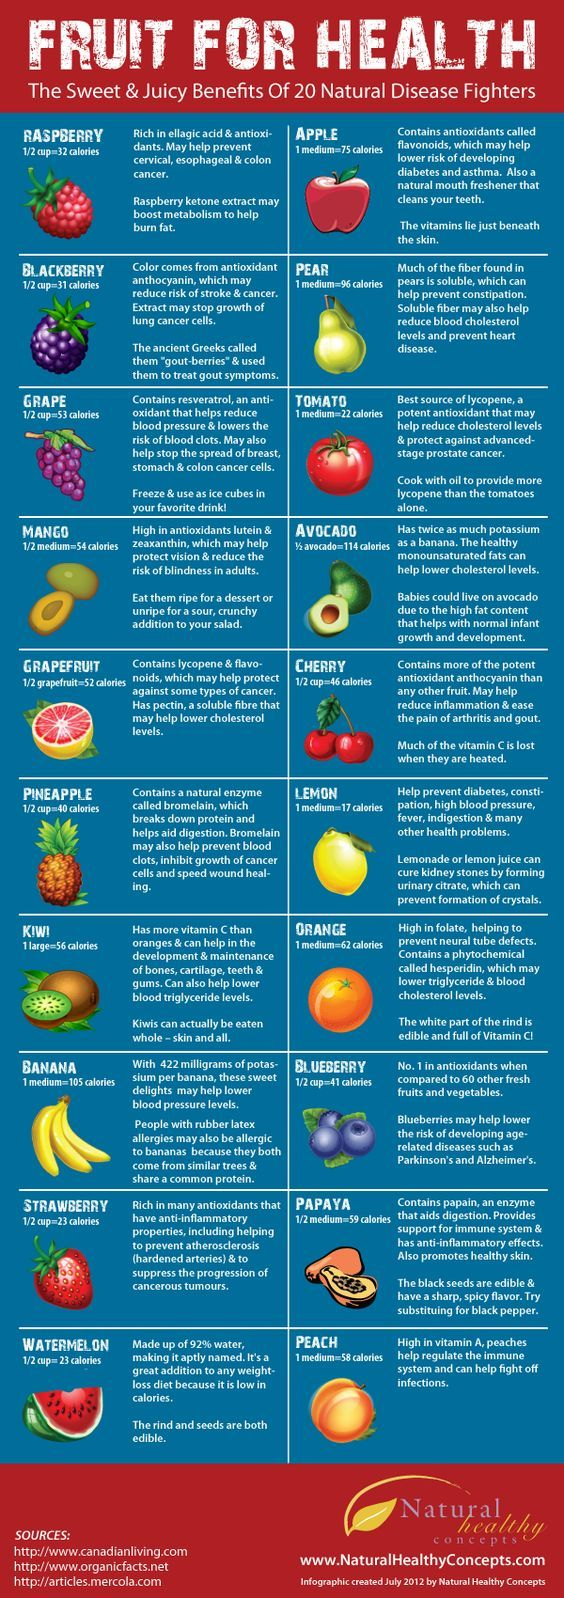 The Health Benefits of Fruit: